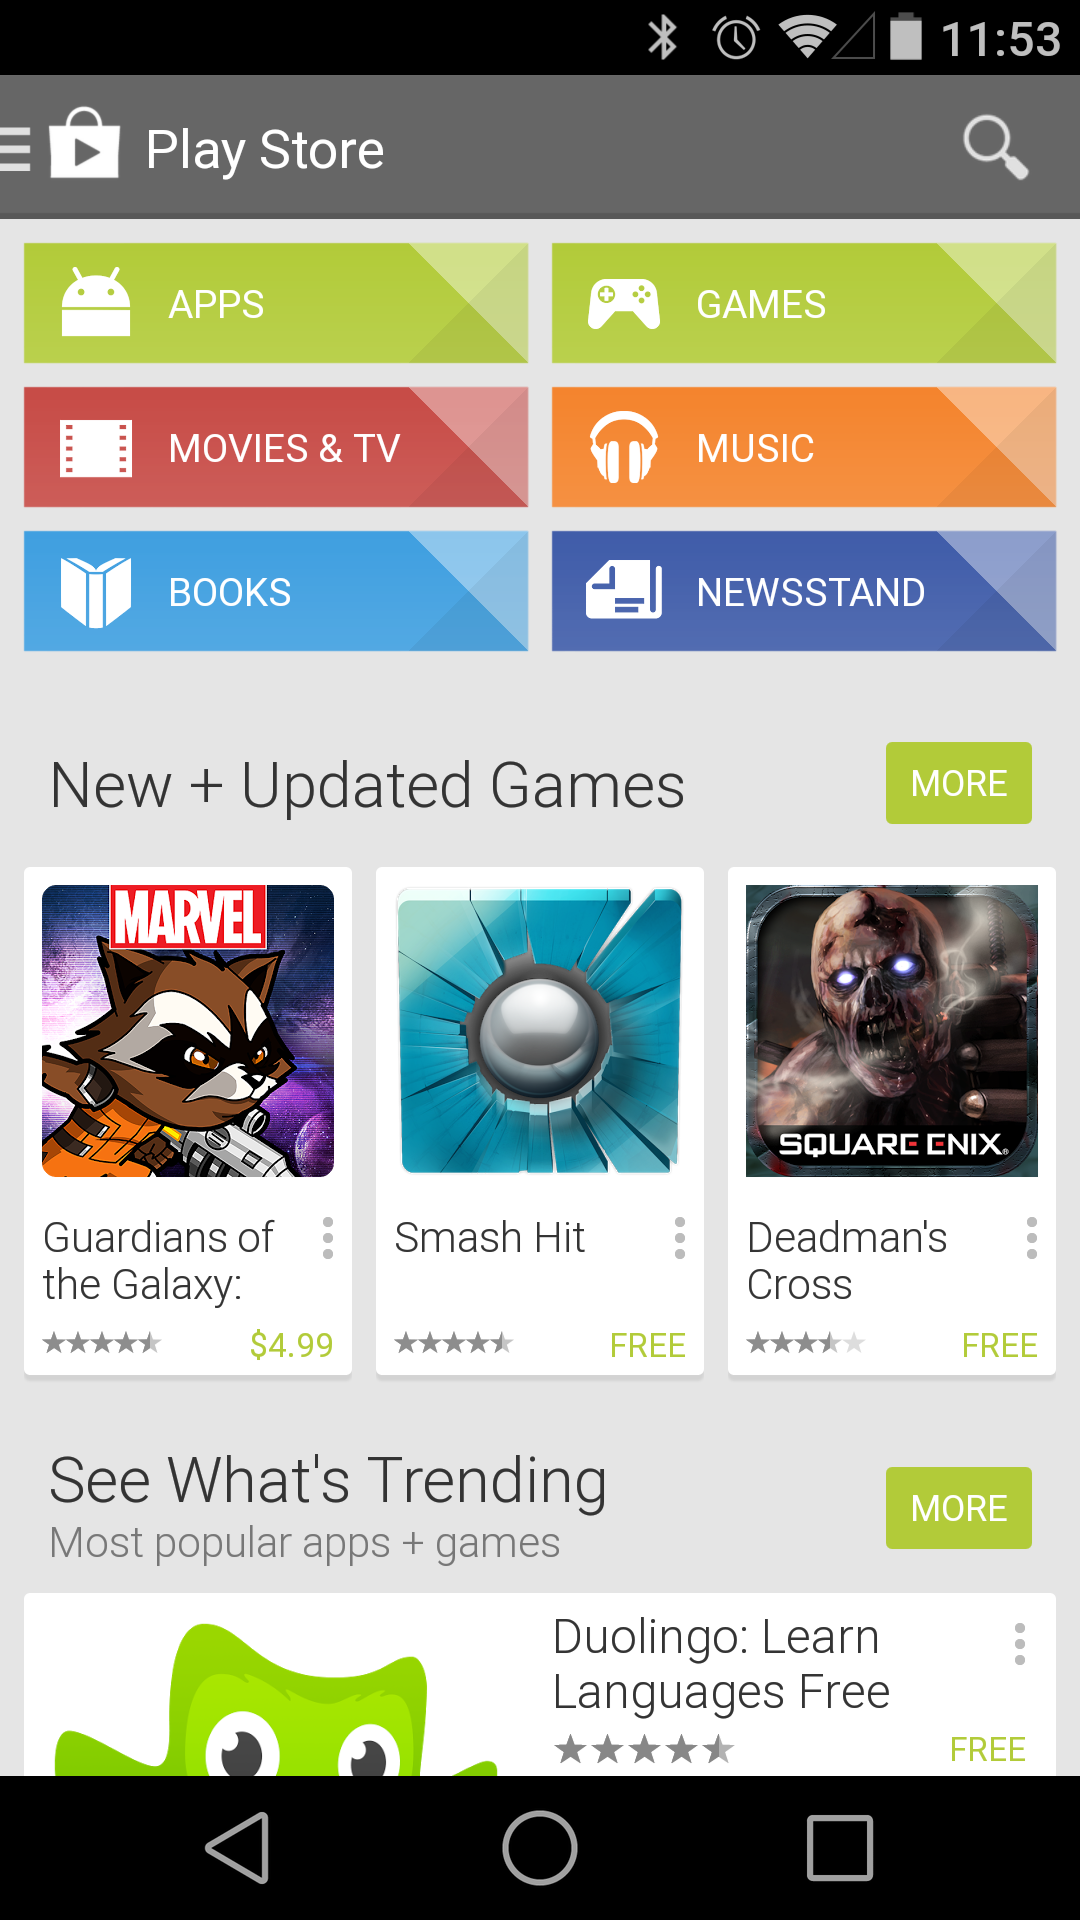 This is what the Play Store looks like, if you've forgotten.